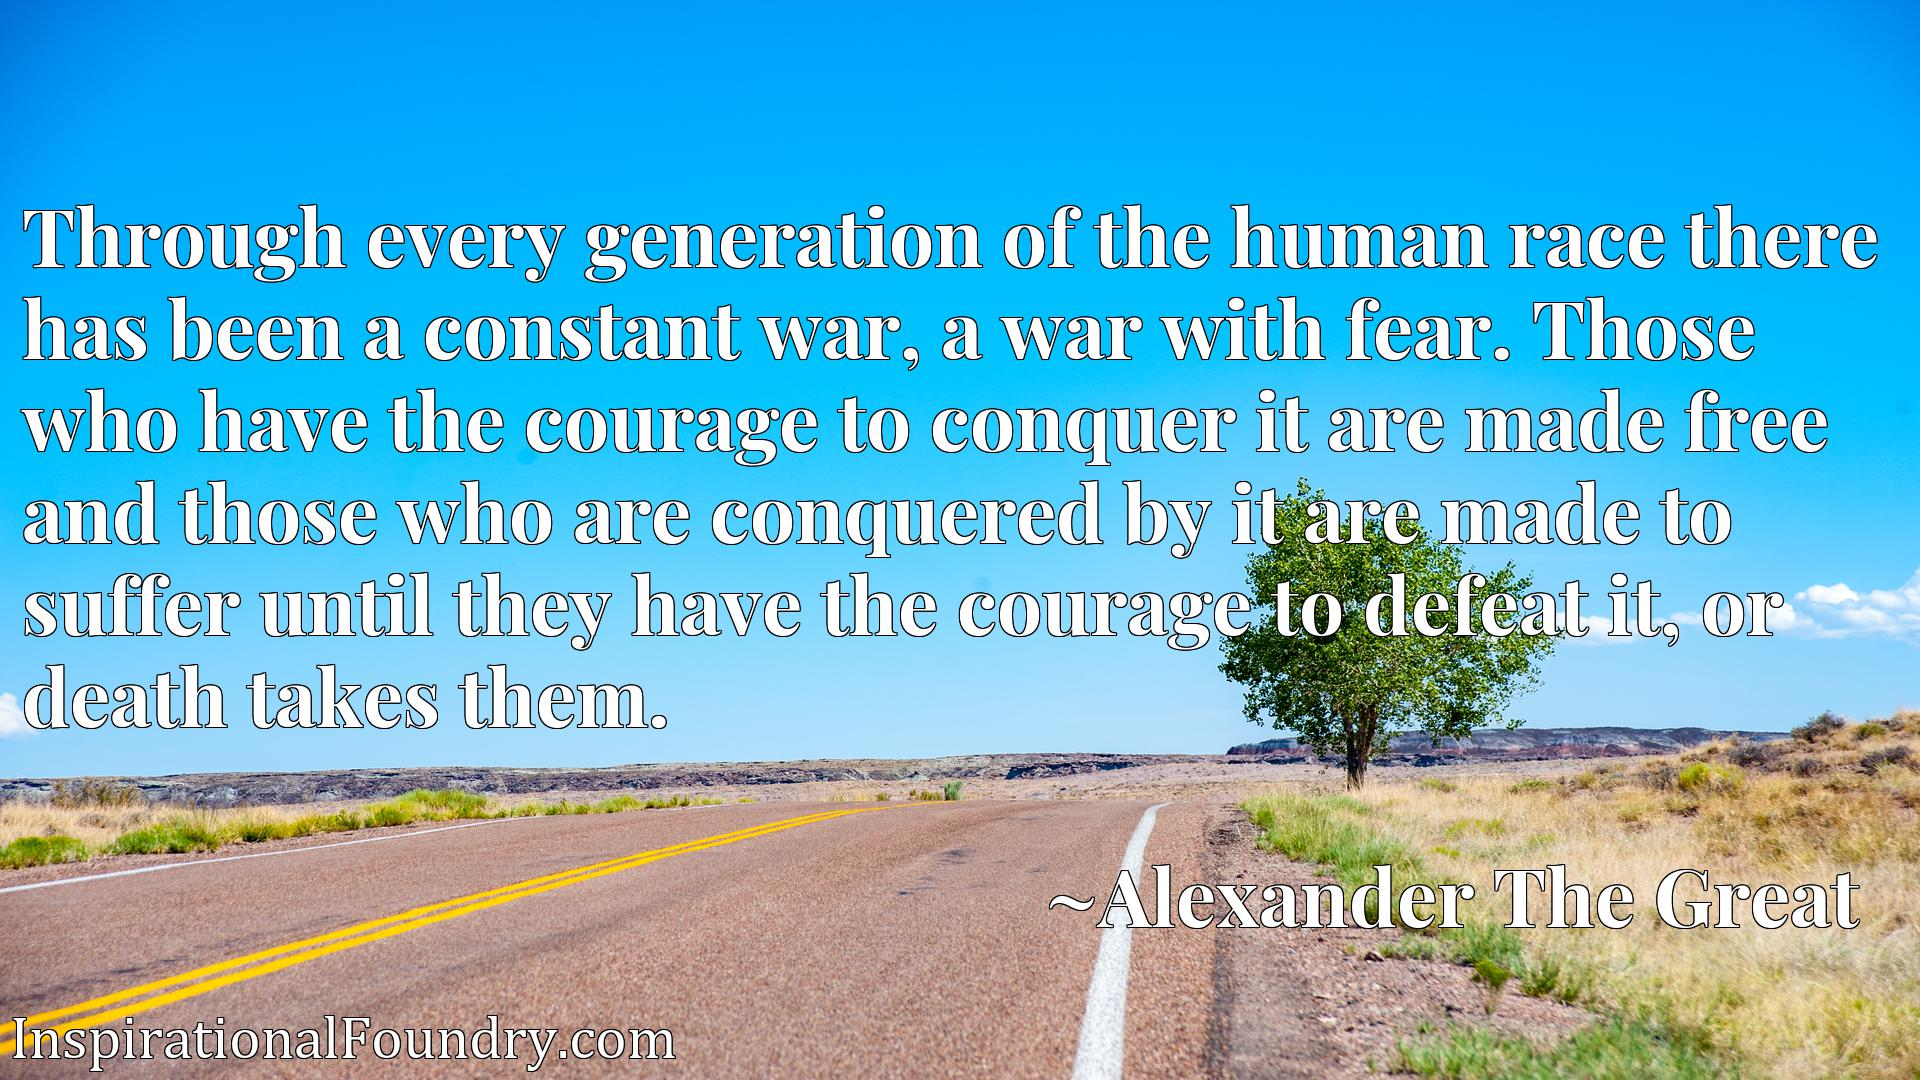 Through every generation of the human race there has been a constant war, a war with fear. Those who have the courage to conquer it are made free and those who are conquered by it are made to suffer until they have the courage to defeat it, or death takes them.